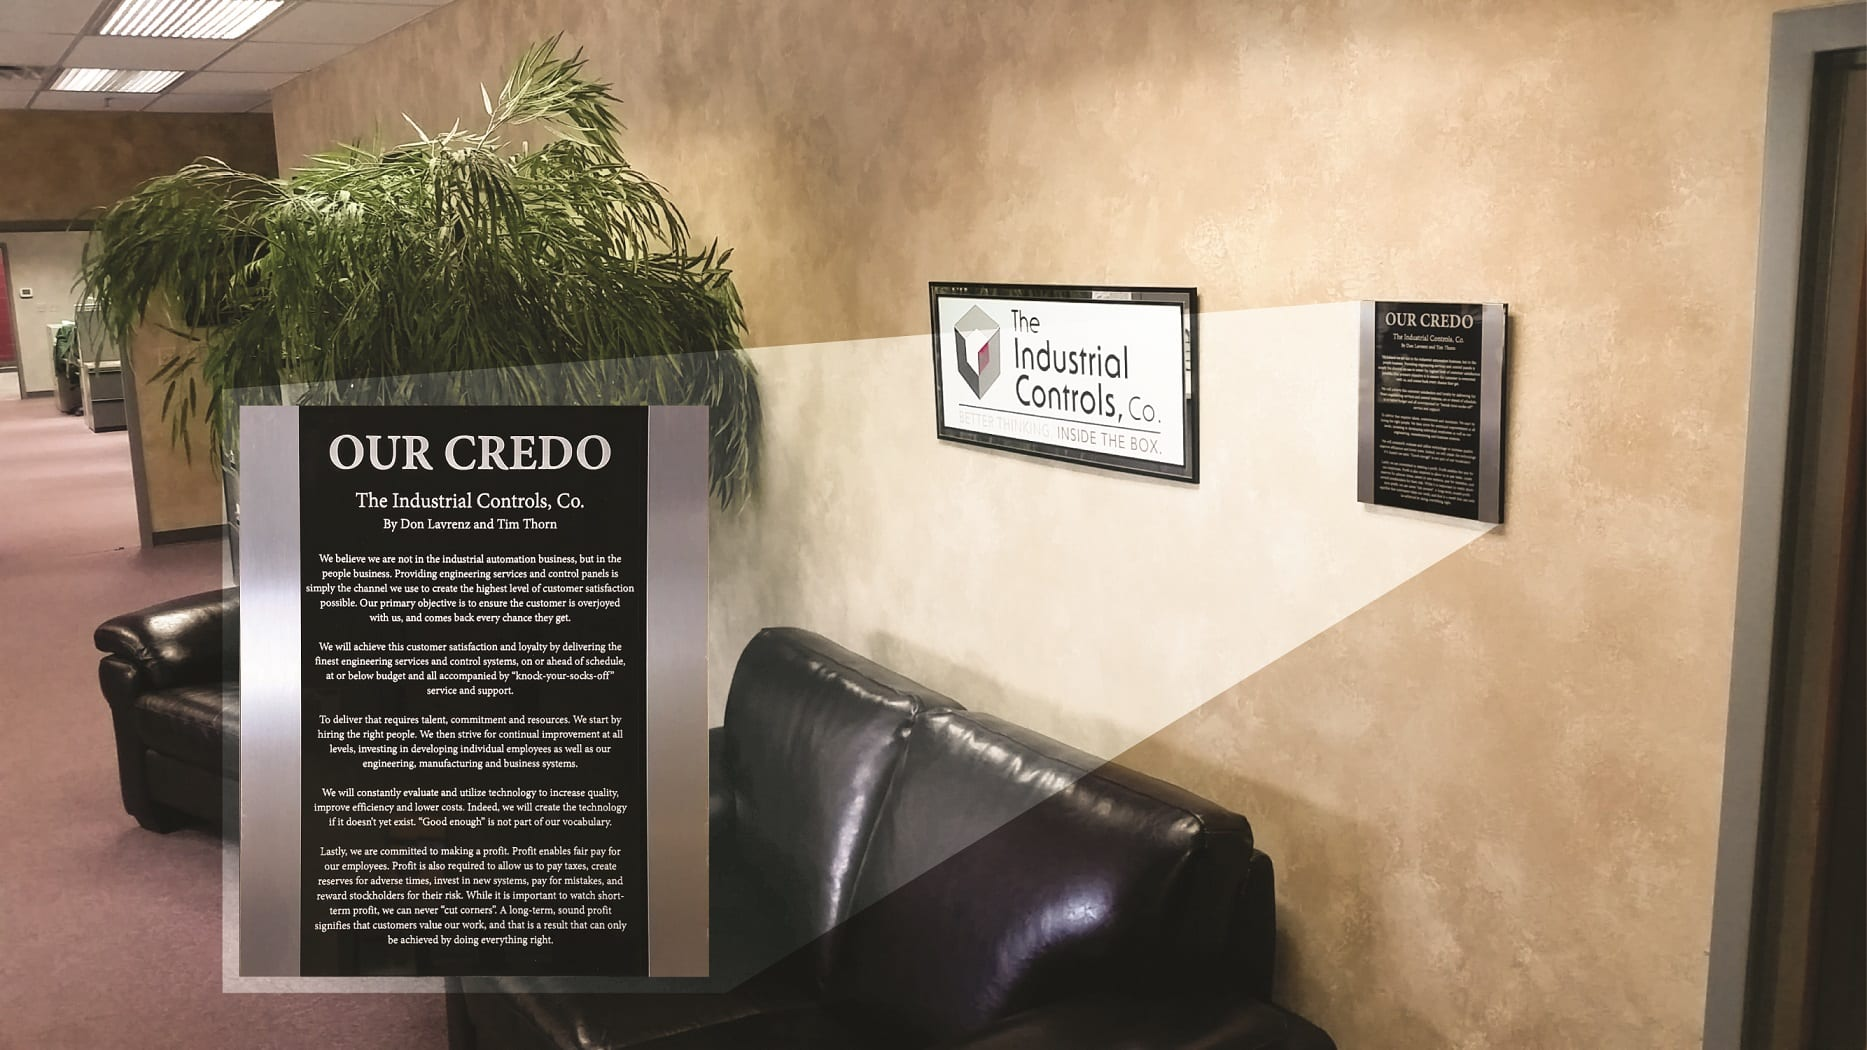 Industrial Controls Company, Inc. Company Credo Sign